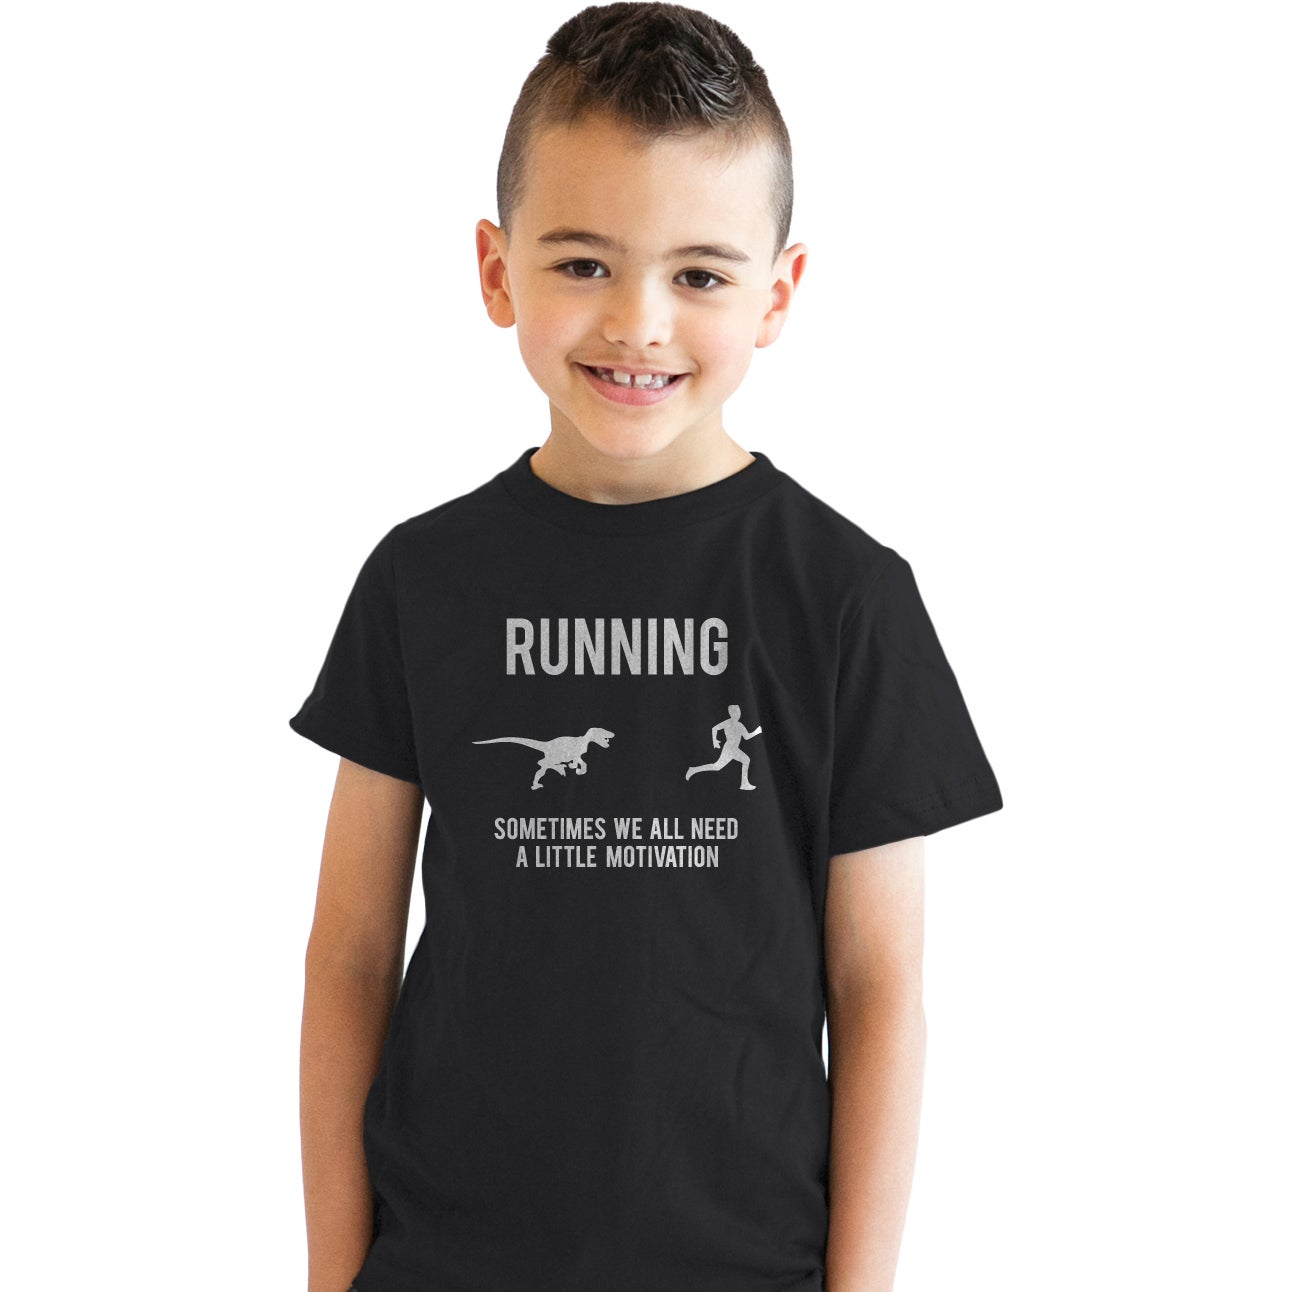 6af75bce6 Shop Youth Running Motivation T shirt Funny Running T shirts Sarcasm Humor  Run Novelty Tees - Ships To Canada - Overstock - 18849883